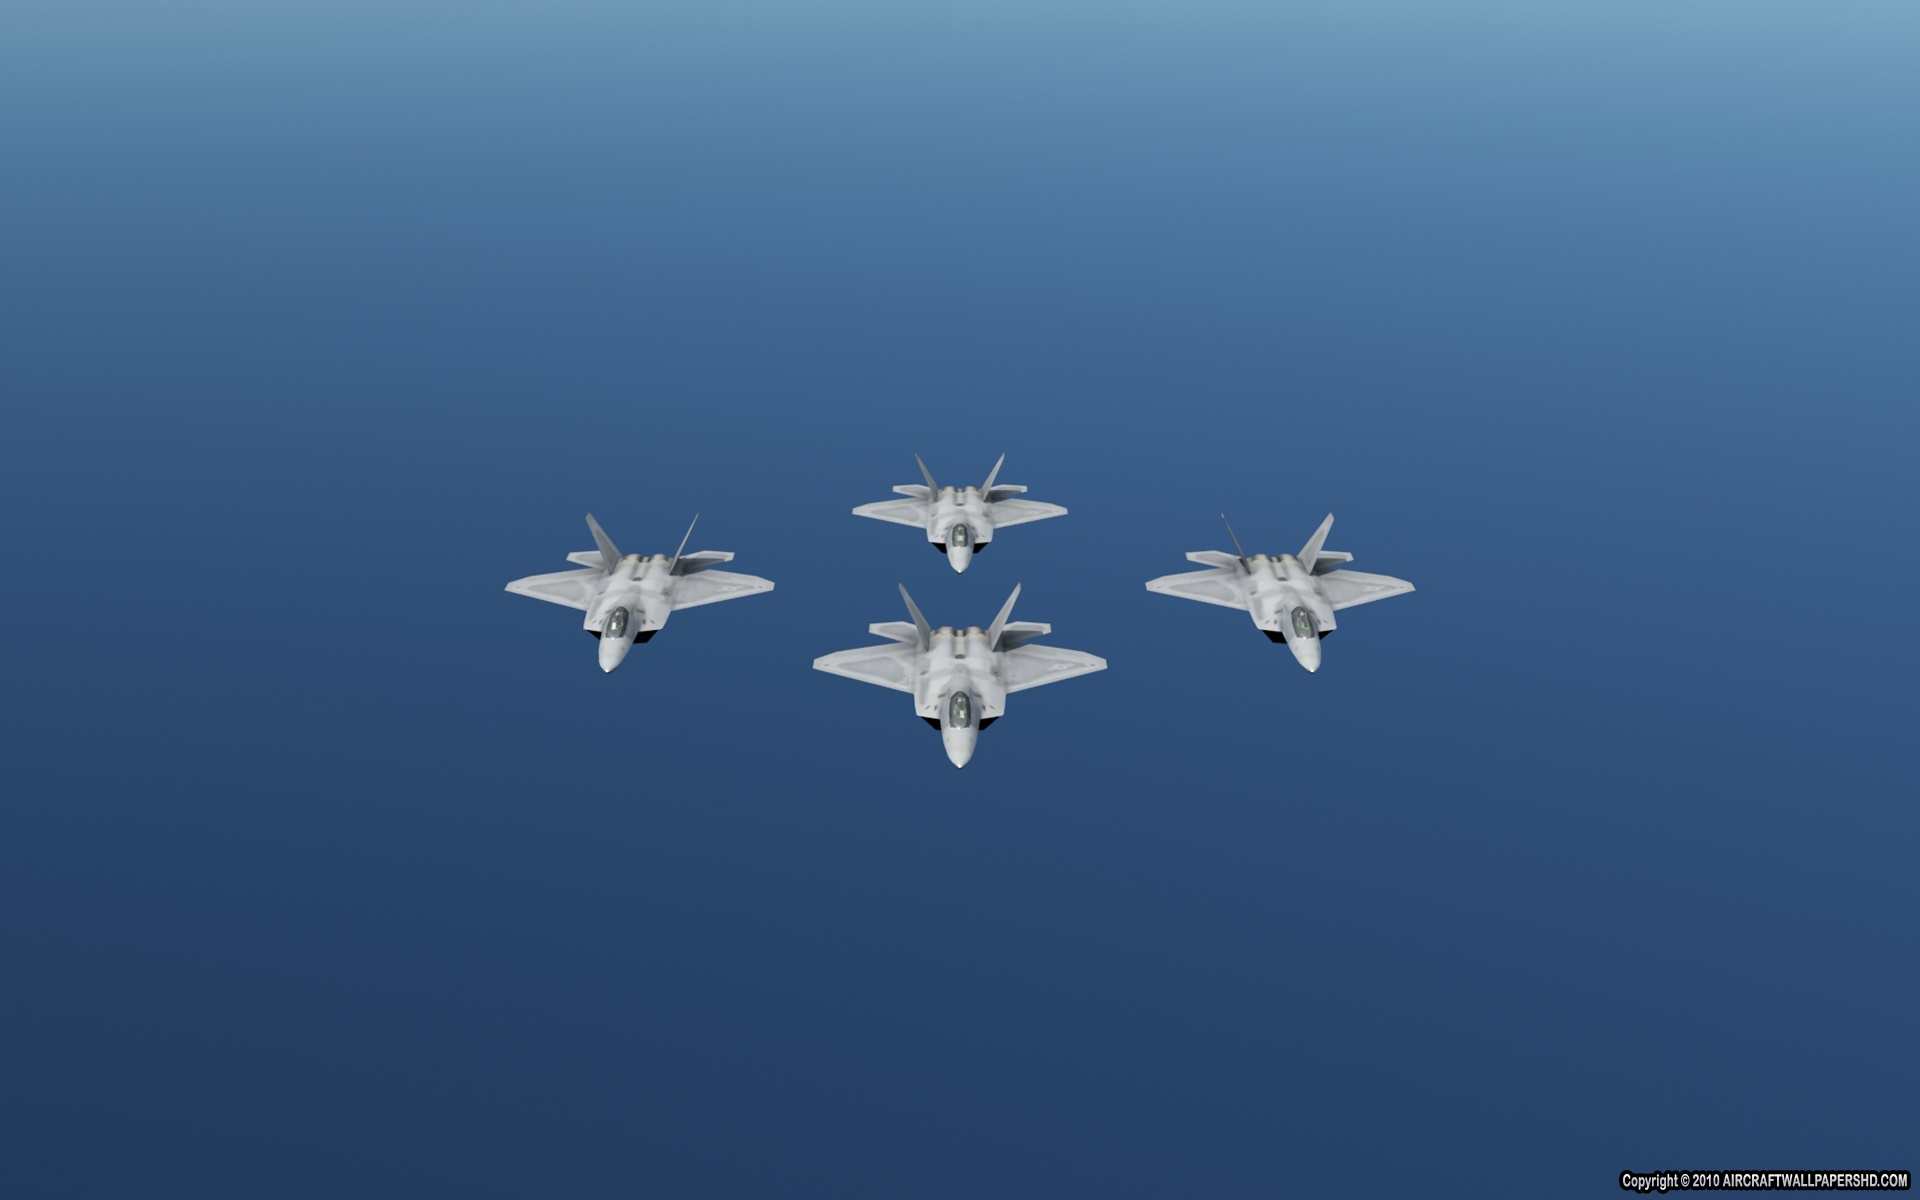 aircraft f 22 raptor backgrounds wallpapersjpg 1920x1200